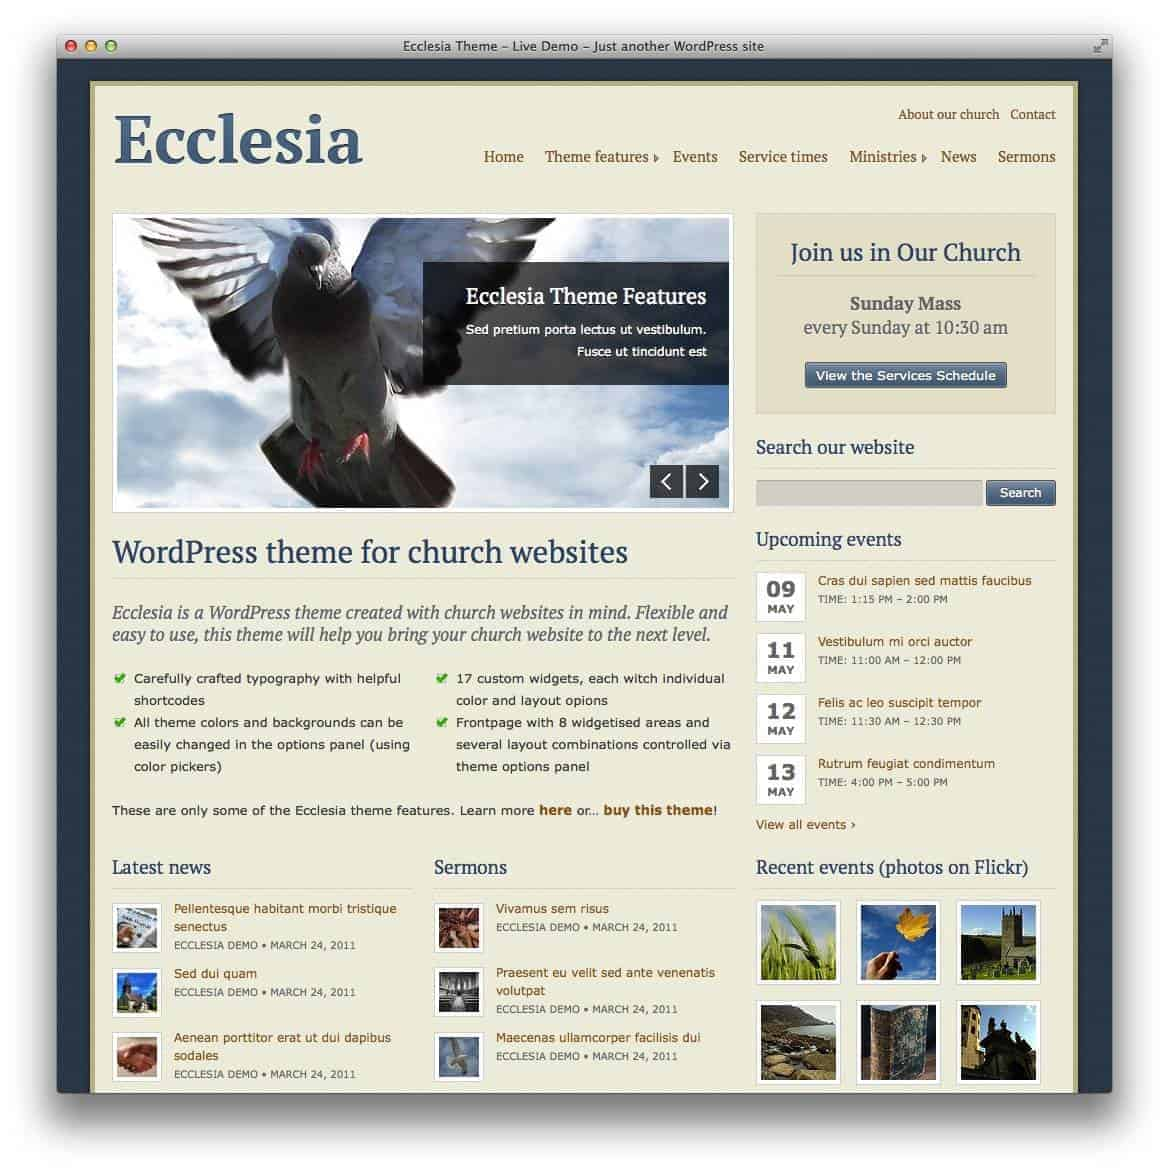 ecclesia-wordpress-theme-for-church